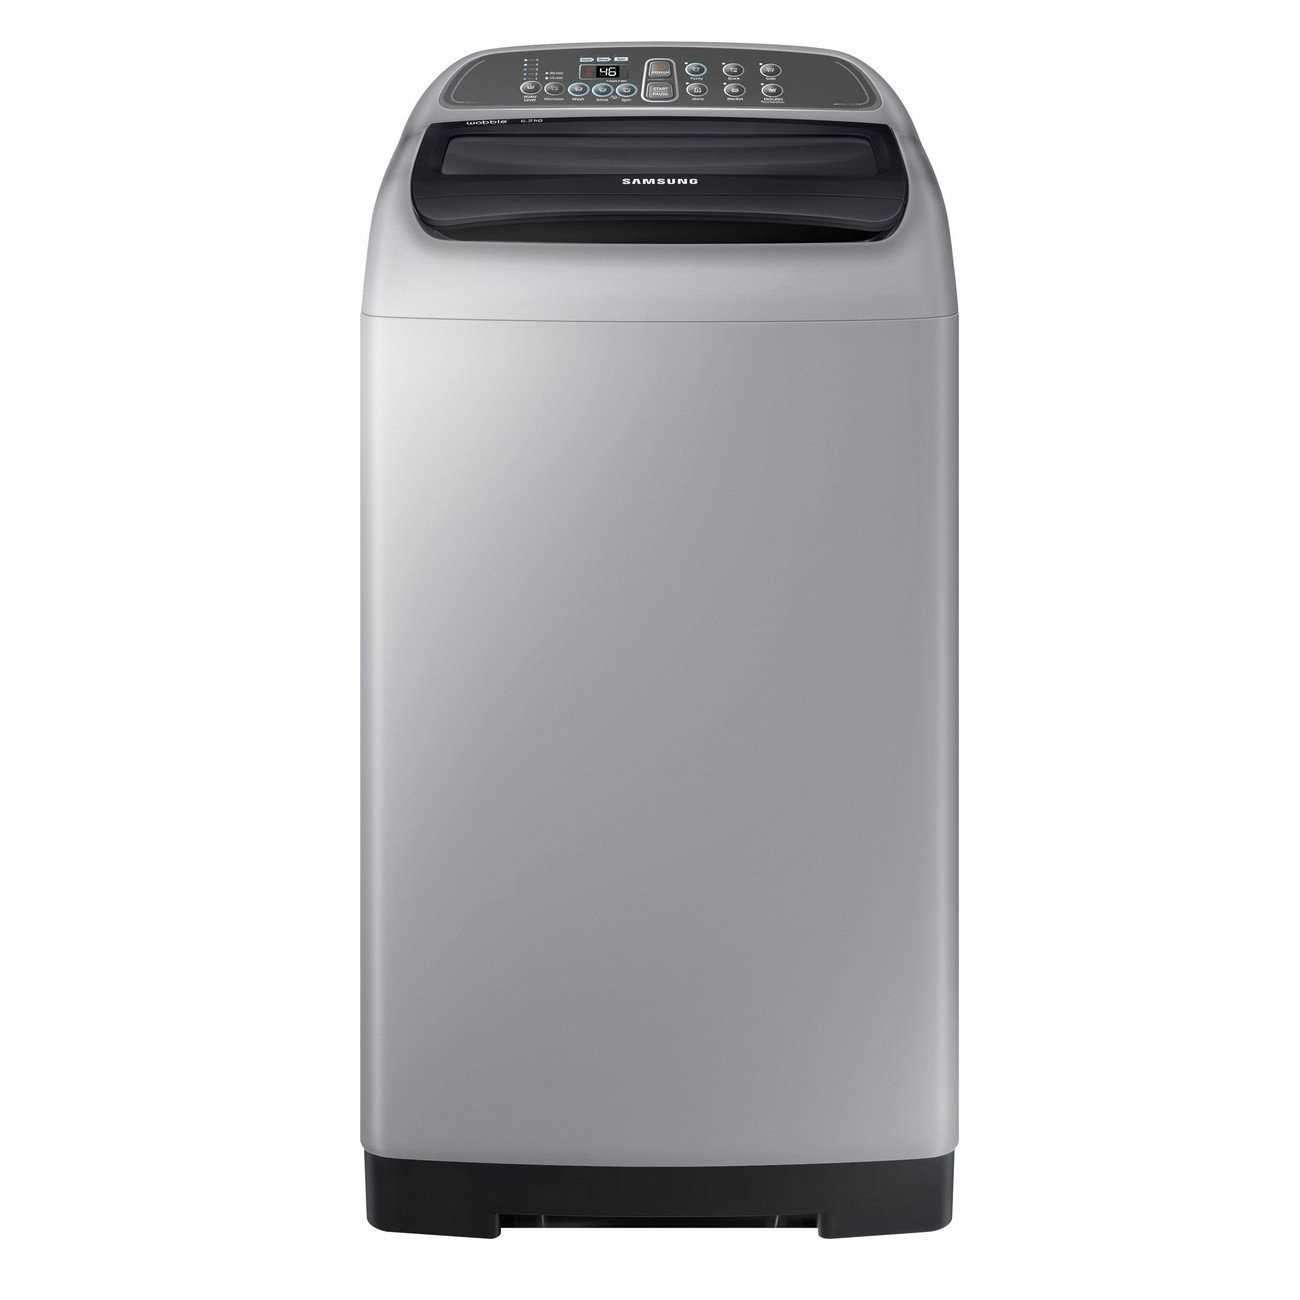 Samsung WA62M4200HA 6.2 Kg Fully Automatic Top Loading Washing Machine